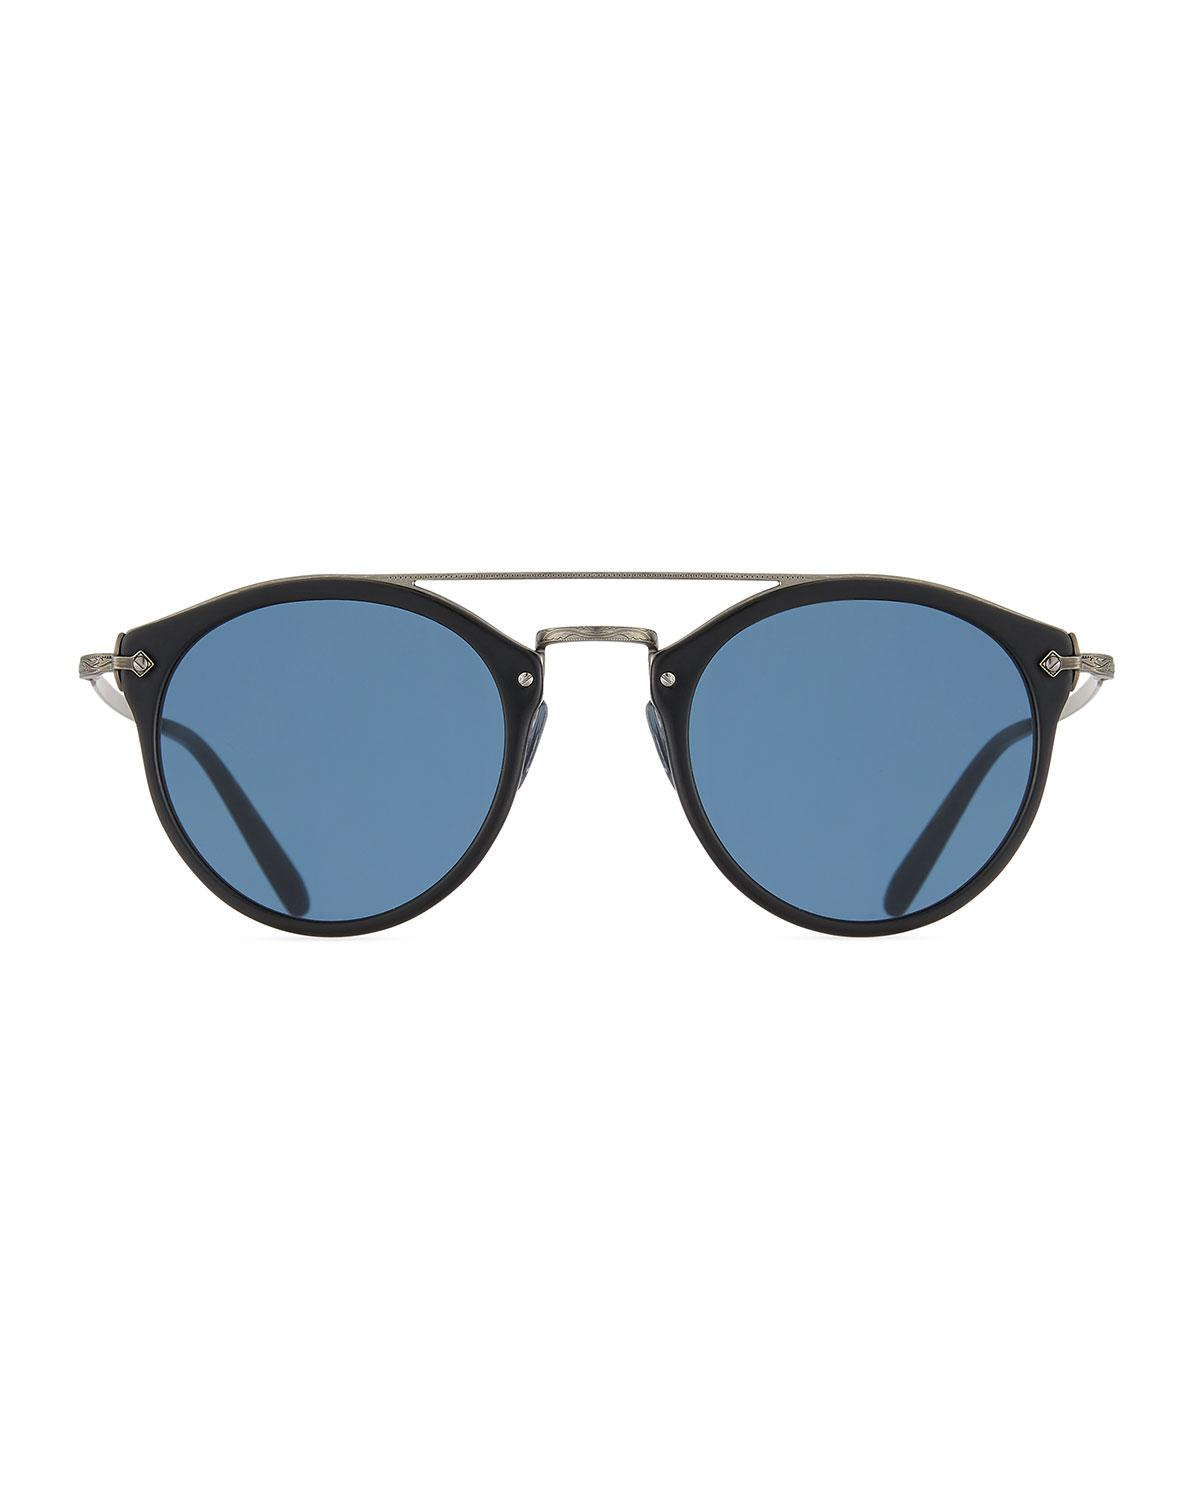 29938cb64d Lyst - Oliver Peoples Remick Vintage Brow-bar Sunglasses in Blue for Men